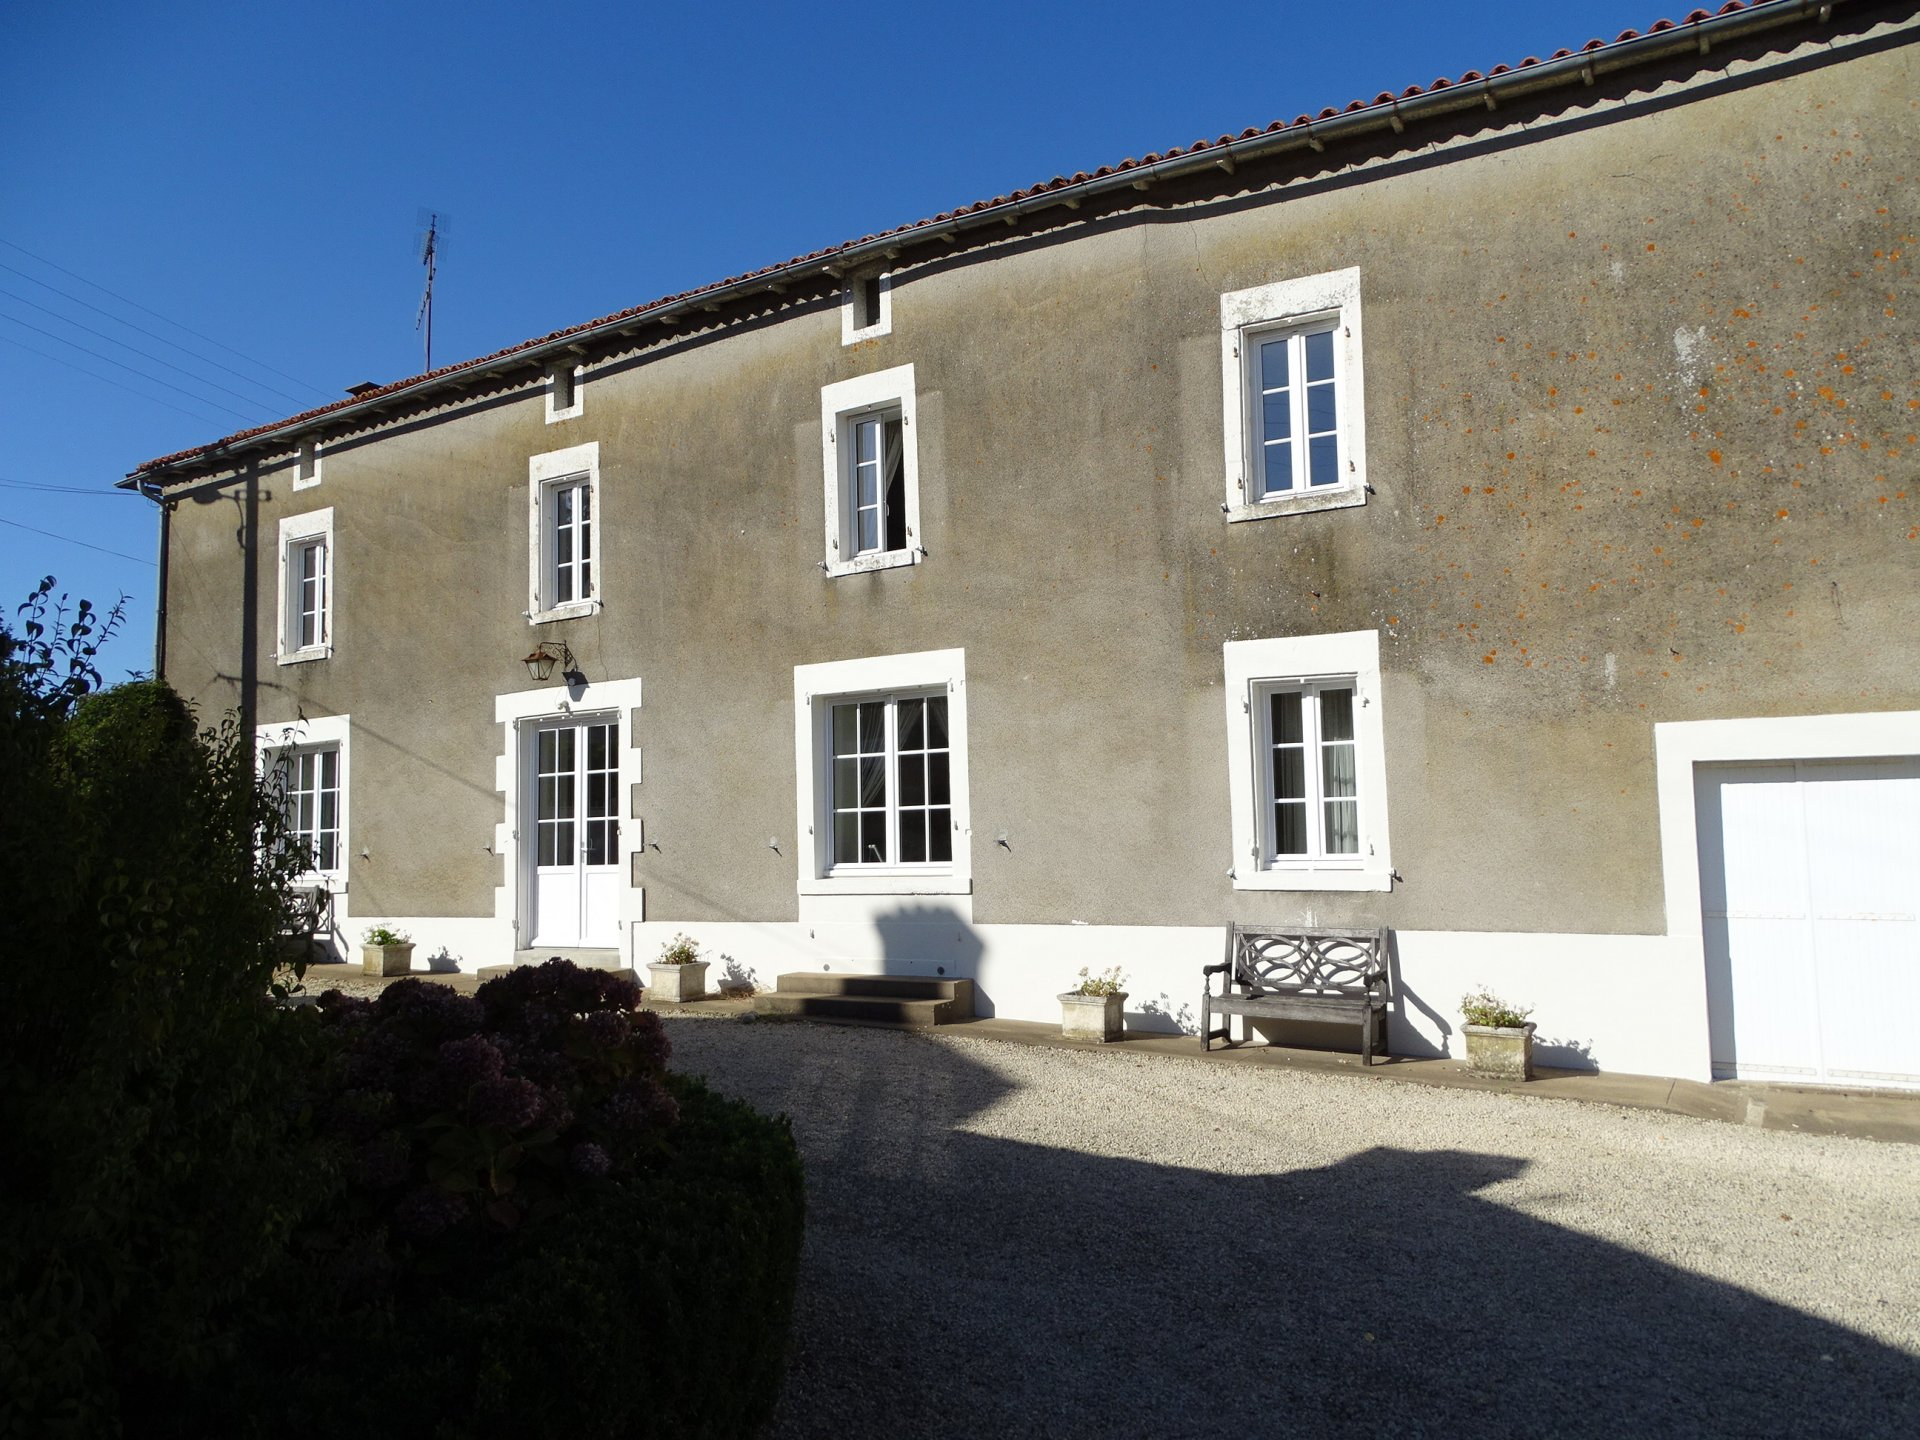 Beautiful, 5 bedroom village house in a tranquil setting